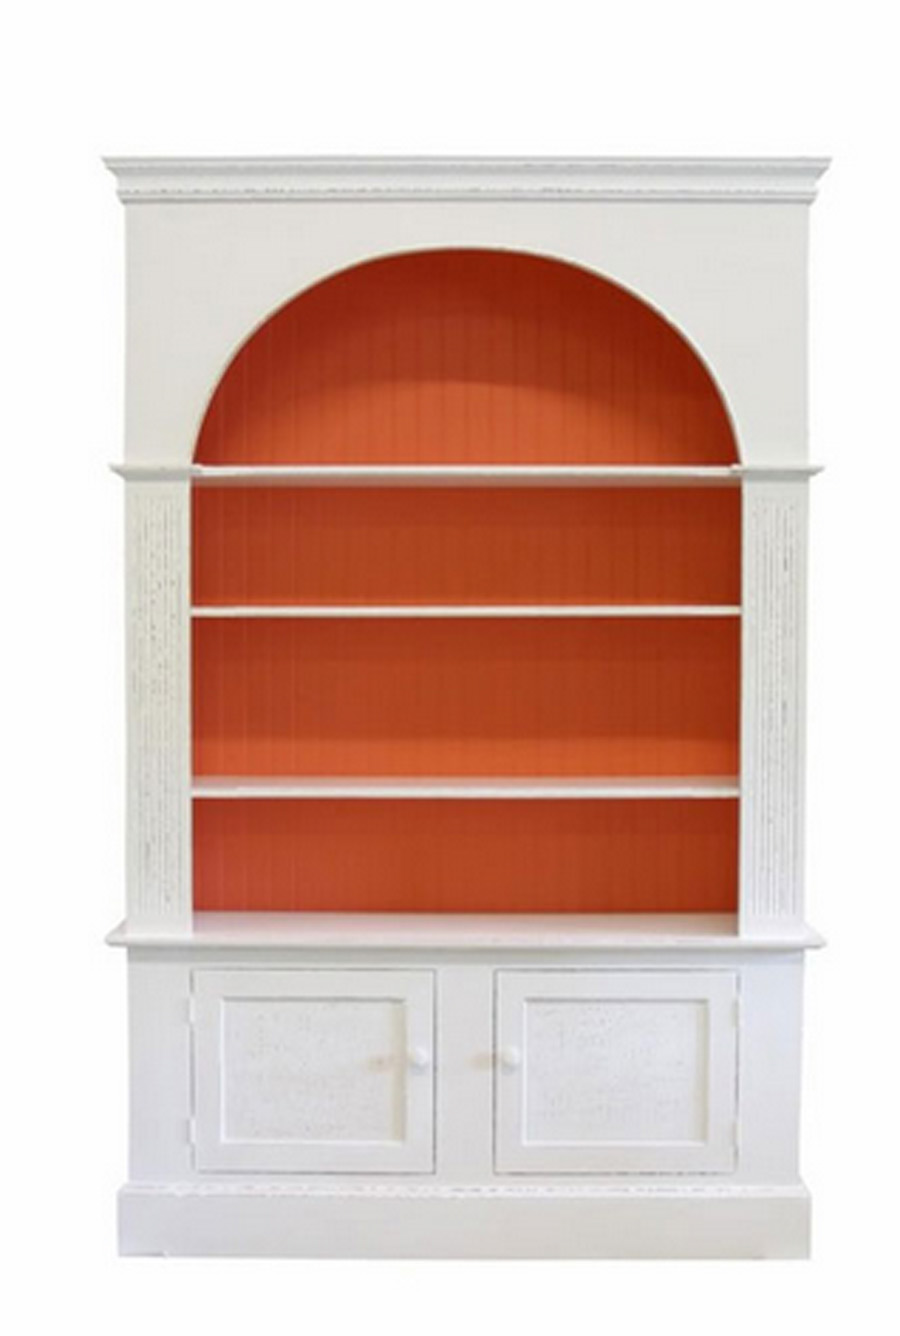 Large Arch Bookcase 84H x 55W x 13.5D @ Crown, 10.75D @ Interior, One